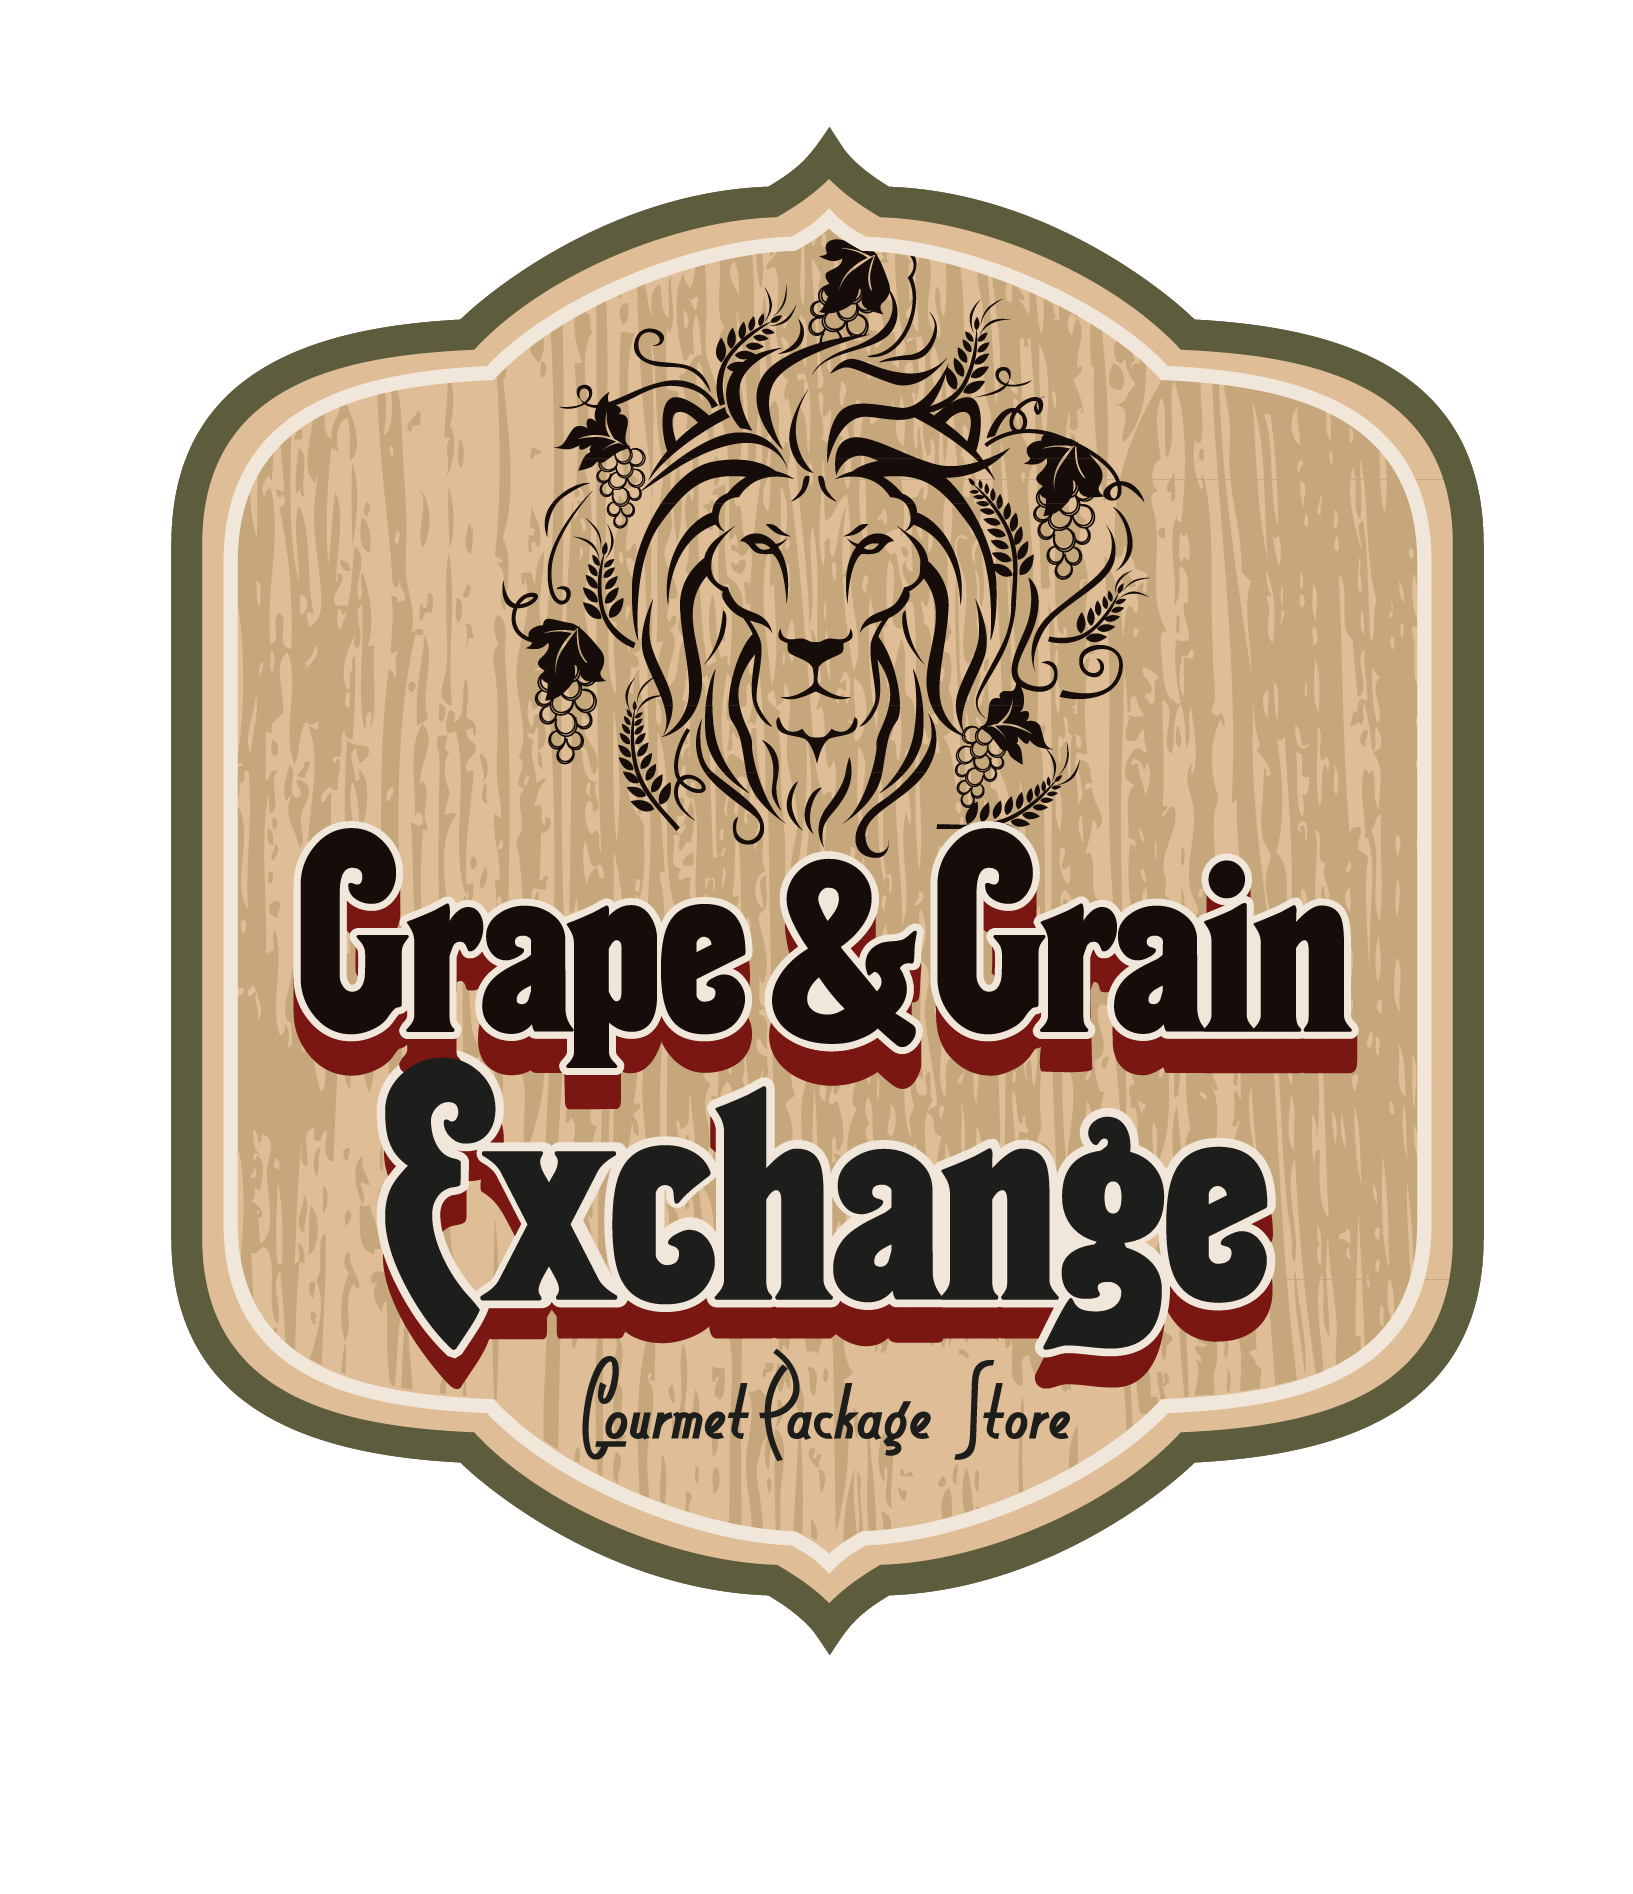 The Grape & Grain Exchange